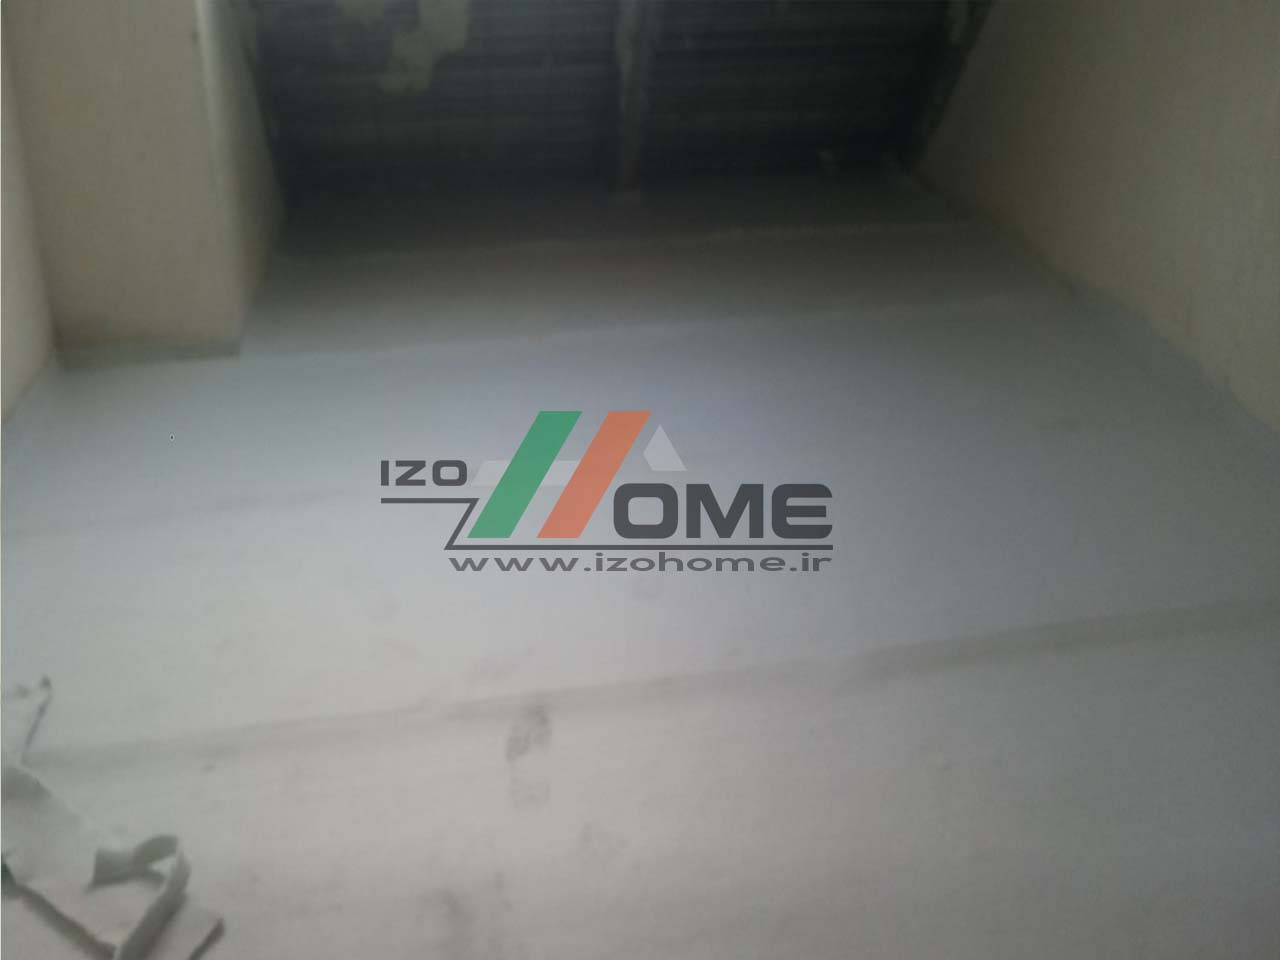 izohome66 - Sound insulation for the floor